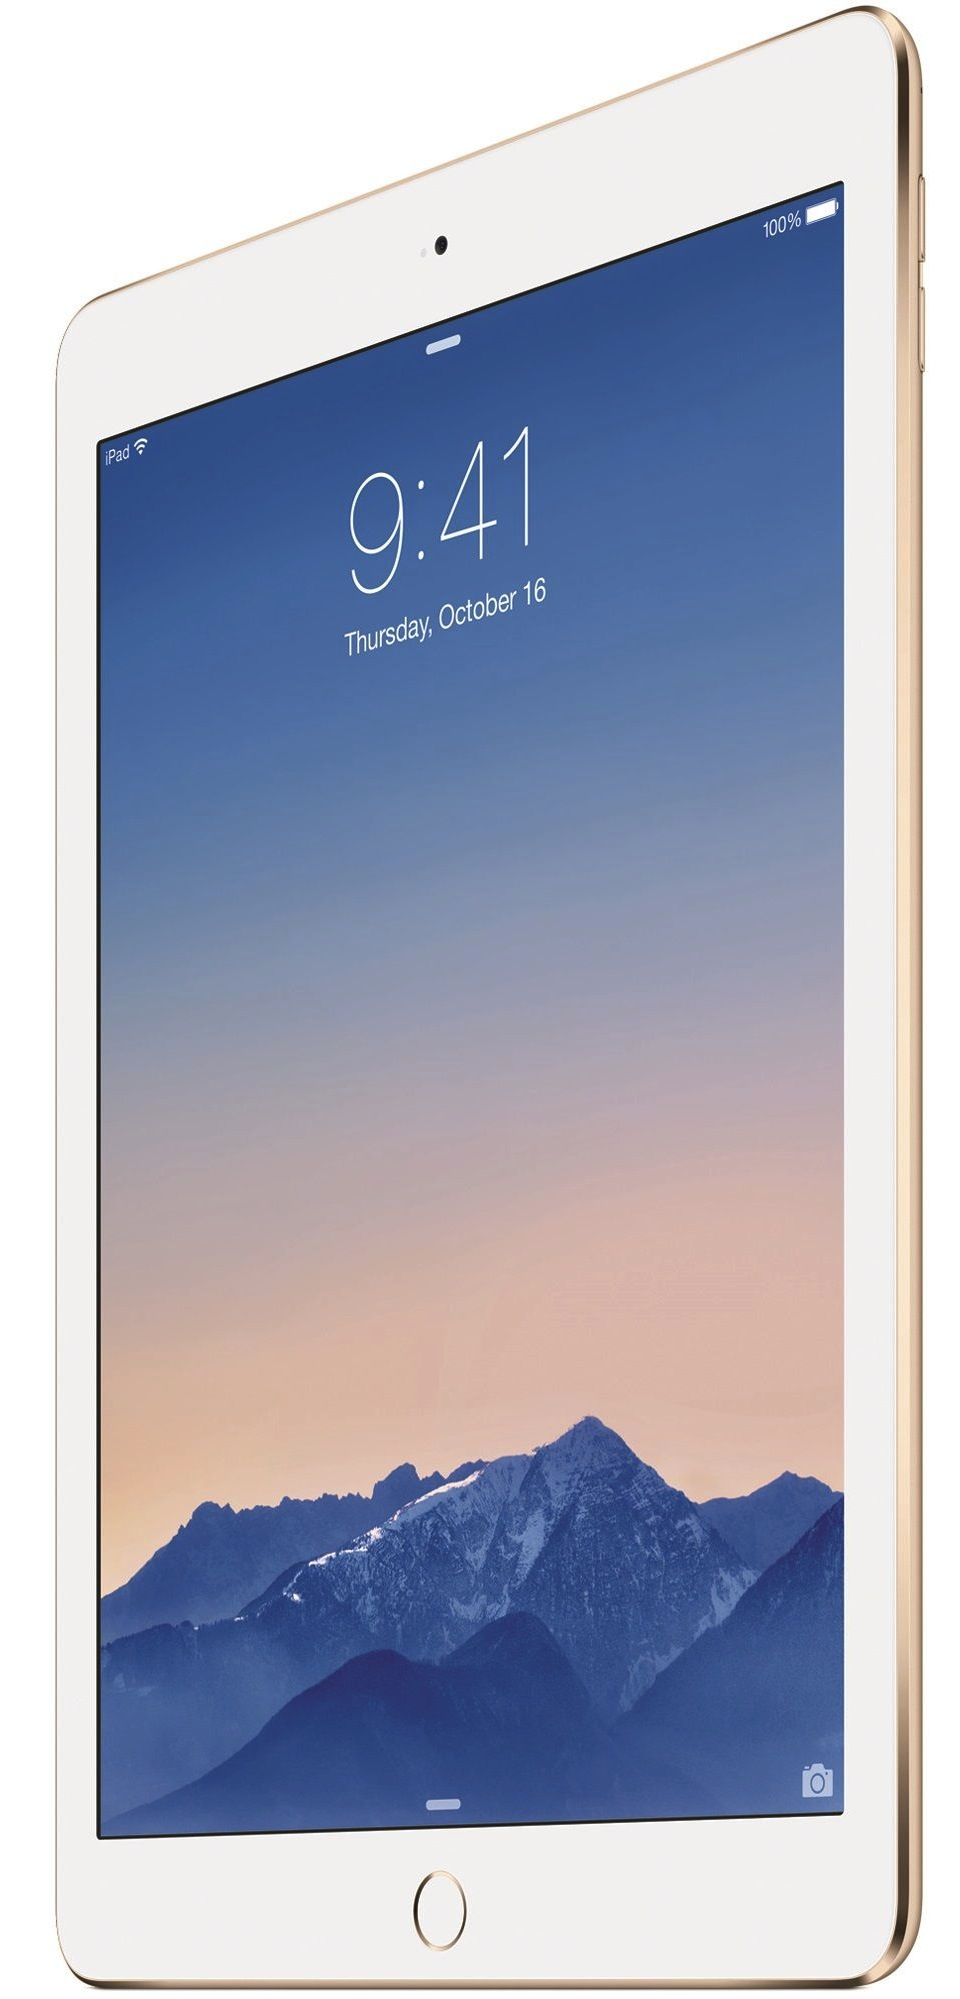 Cadou de Craciun Apple iPad Air 2, 64GB, Wi-Fi, Auriu